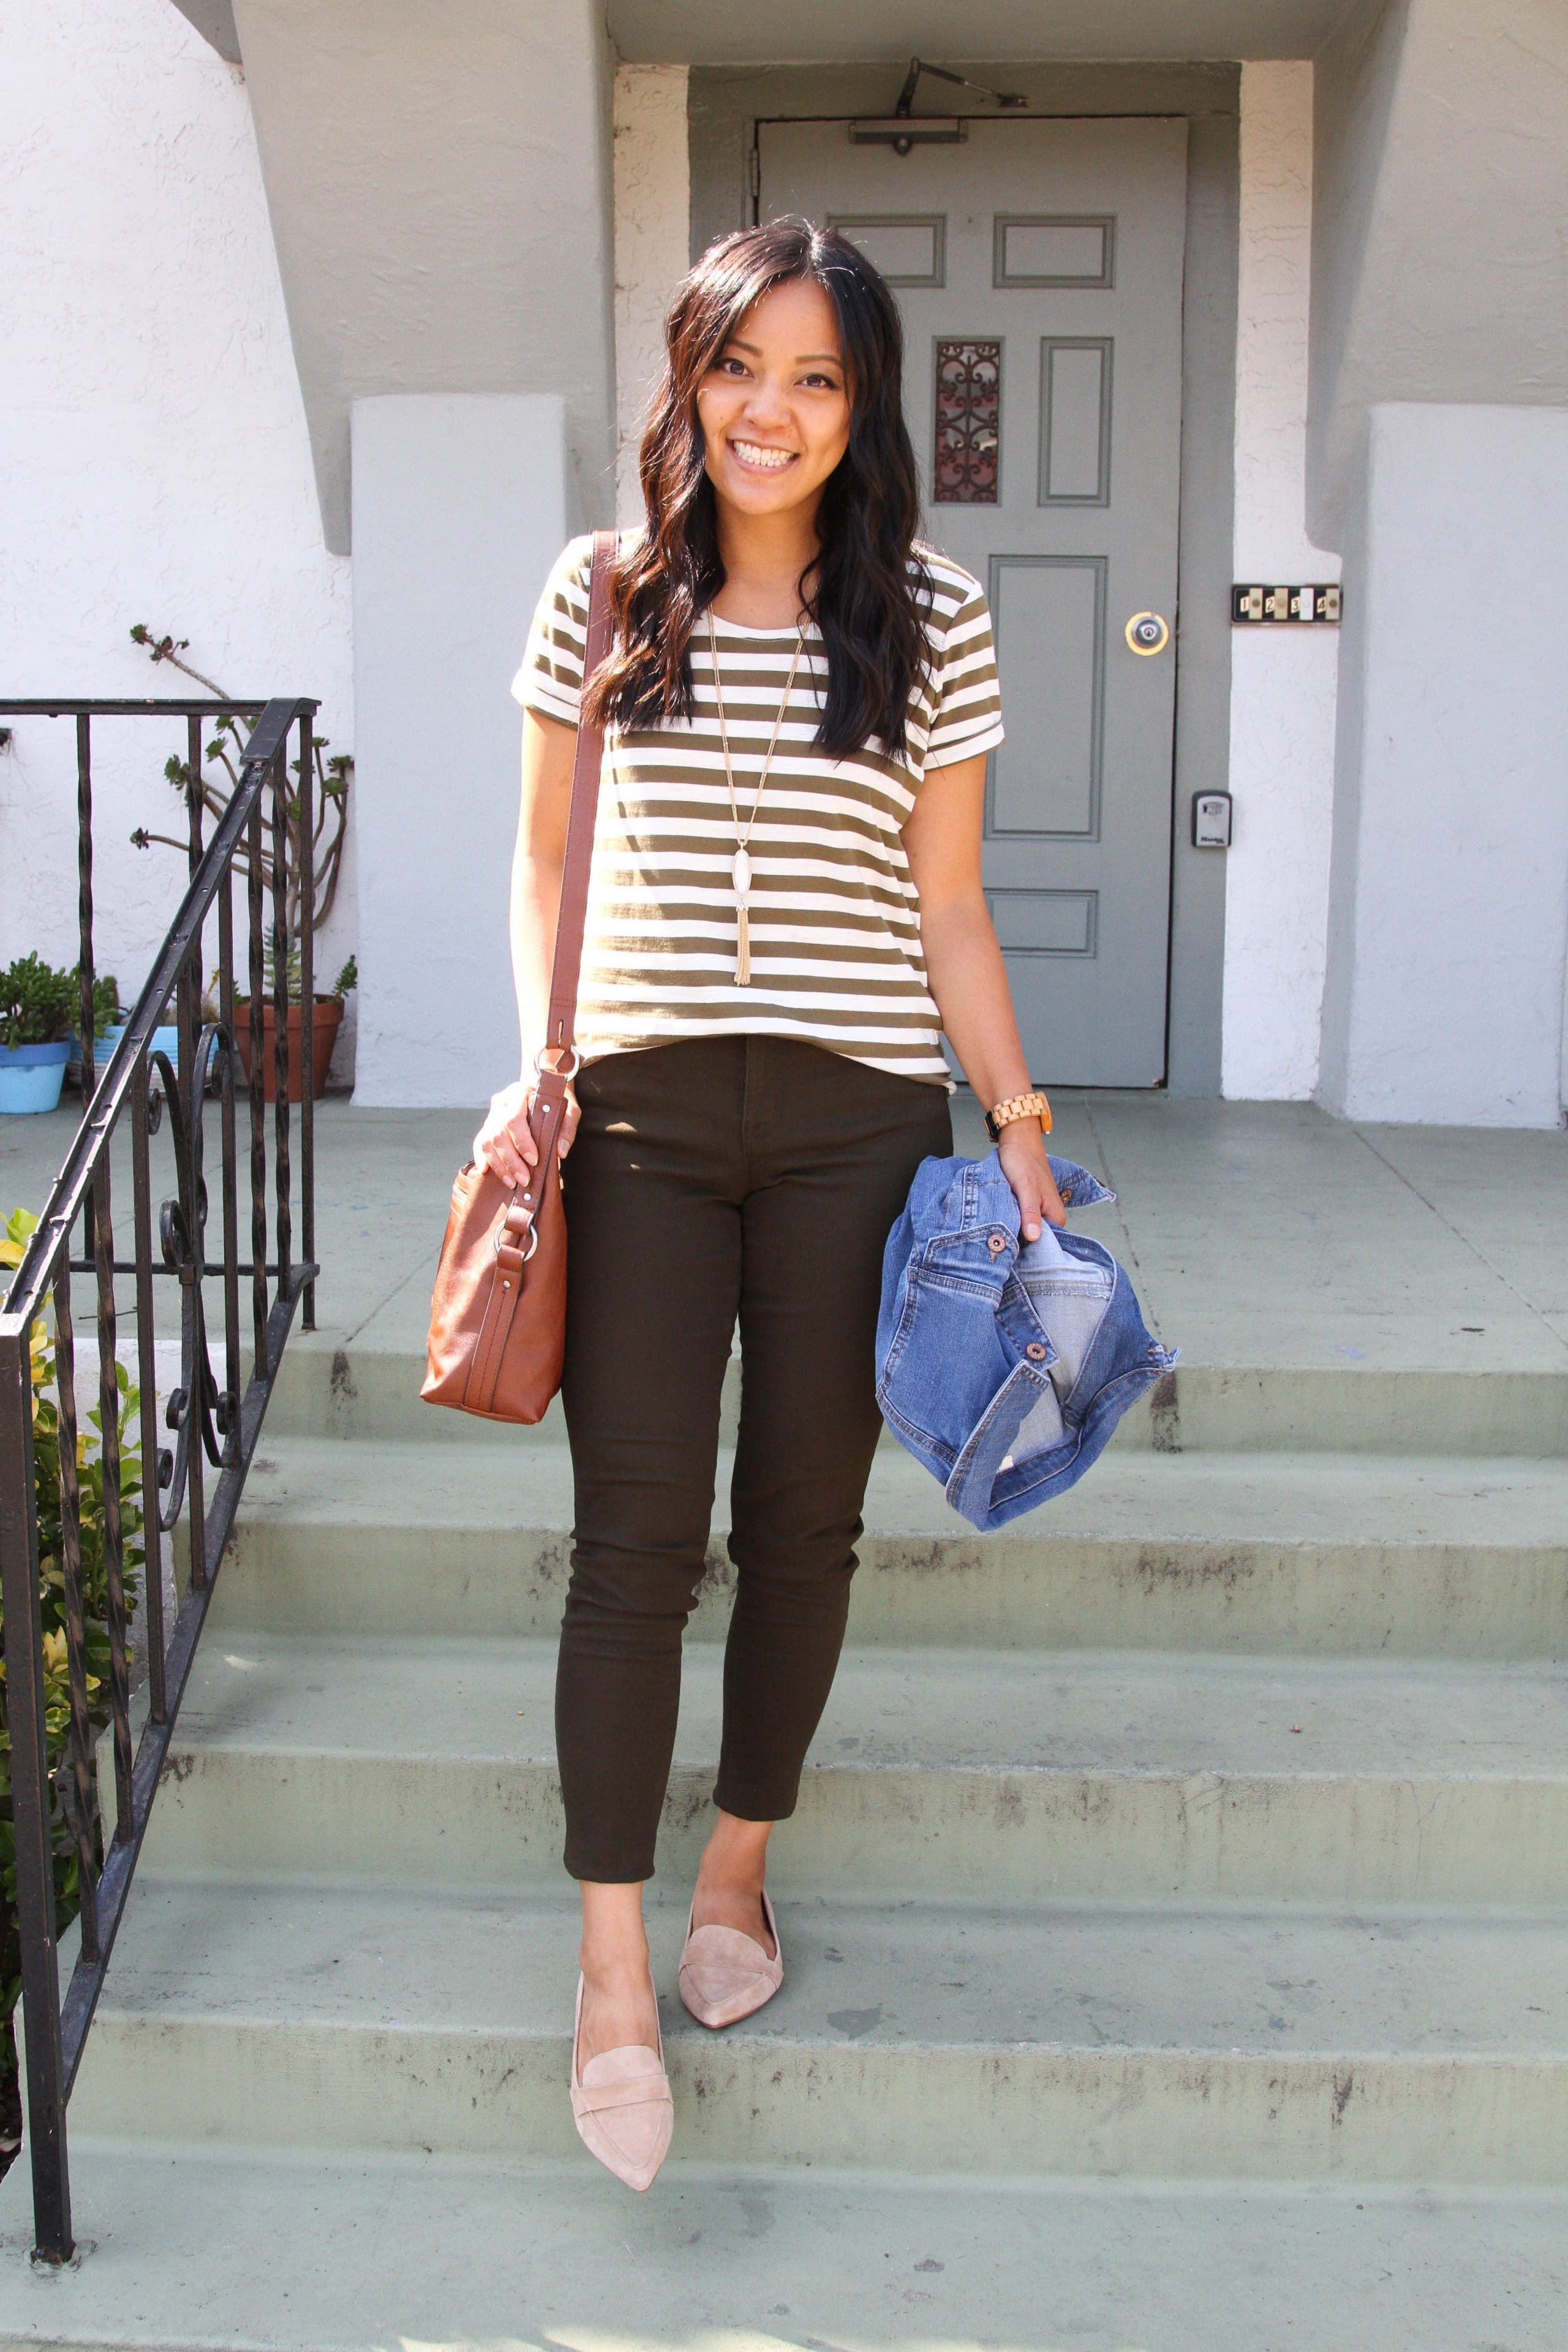 brown and white striped tee + tan loafers + brown pants + denim jacket + cognac purse